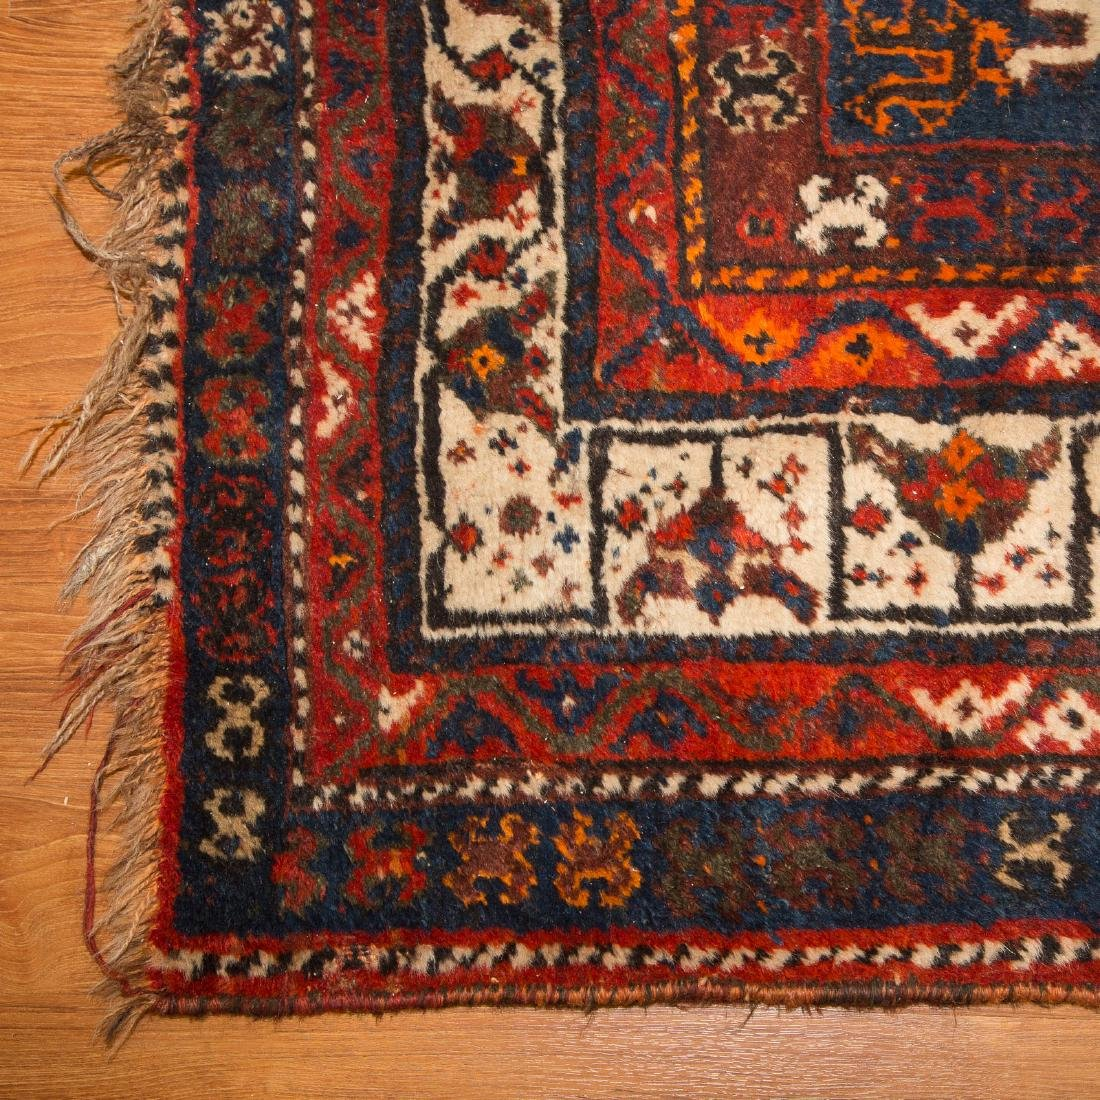 Antique Shiraz rug, approx. 7.8 x 10.4 - 2